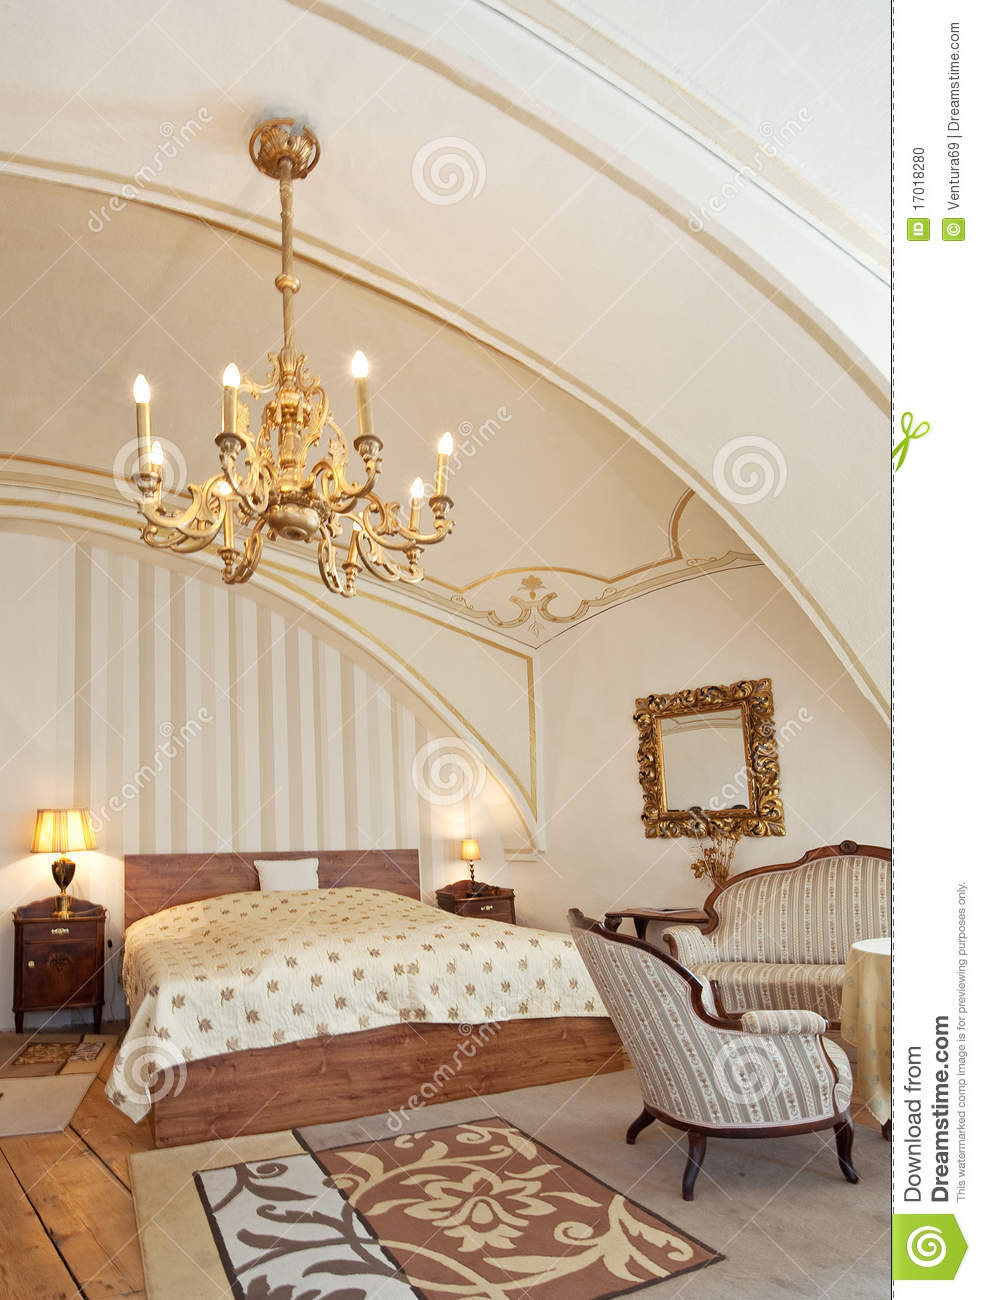 Hotel Room In Vintage Style Stock Photo